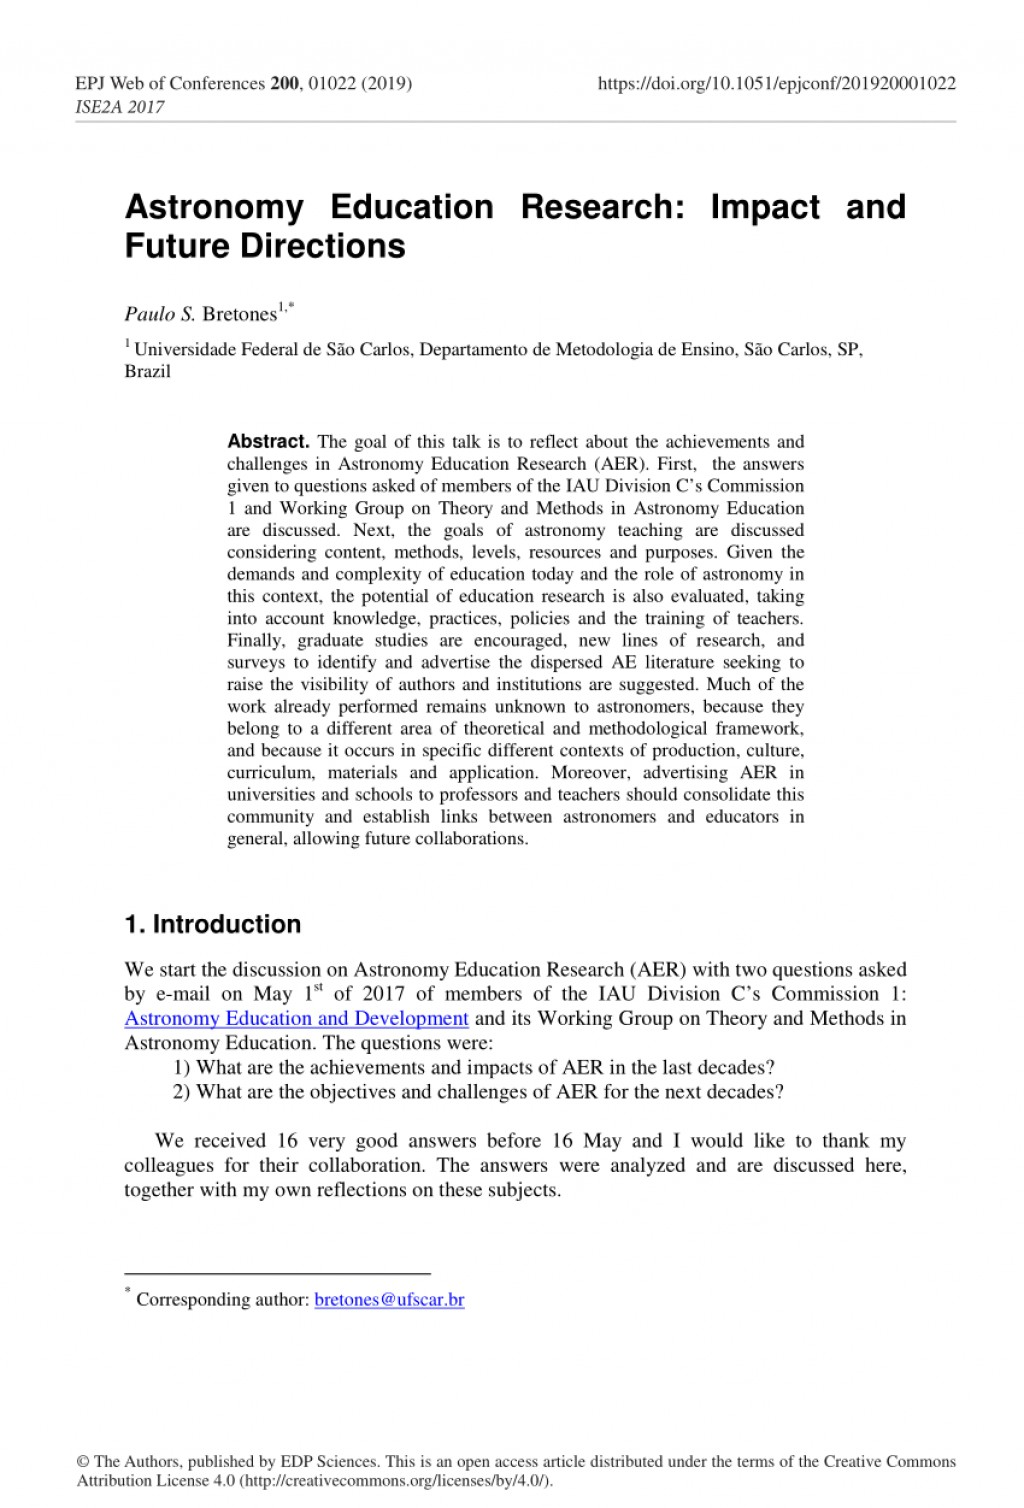 015 Interesting Astronomy Topics For Research Paper Marvelous Large